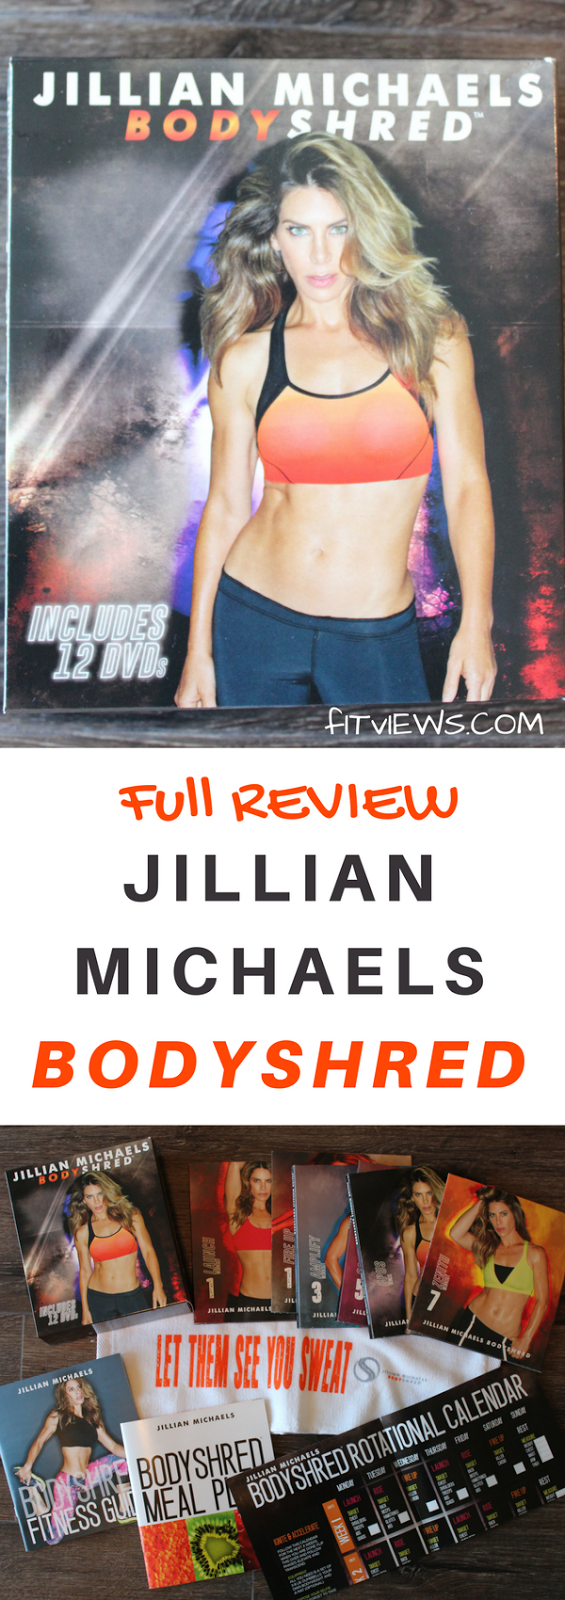 Everything About Jillian Michaels BodyShred